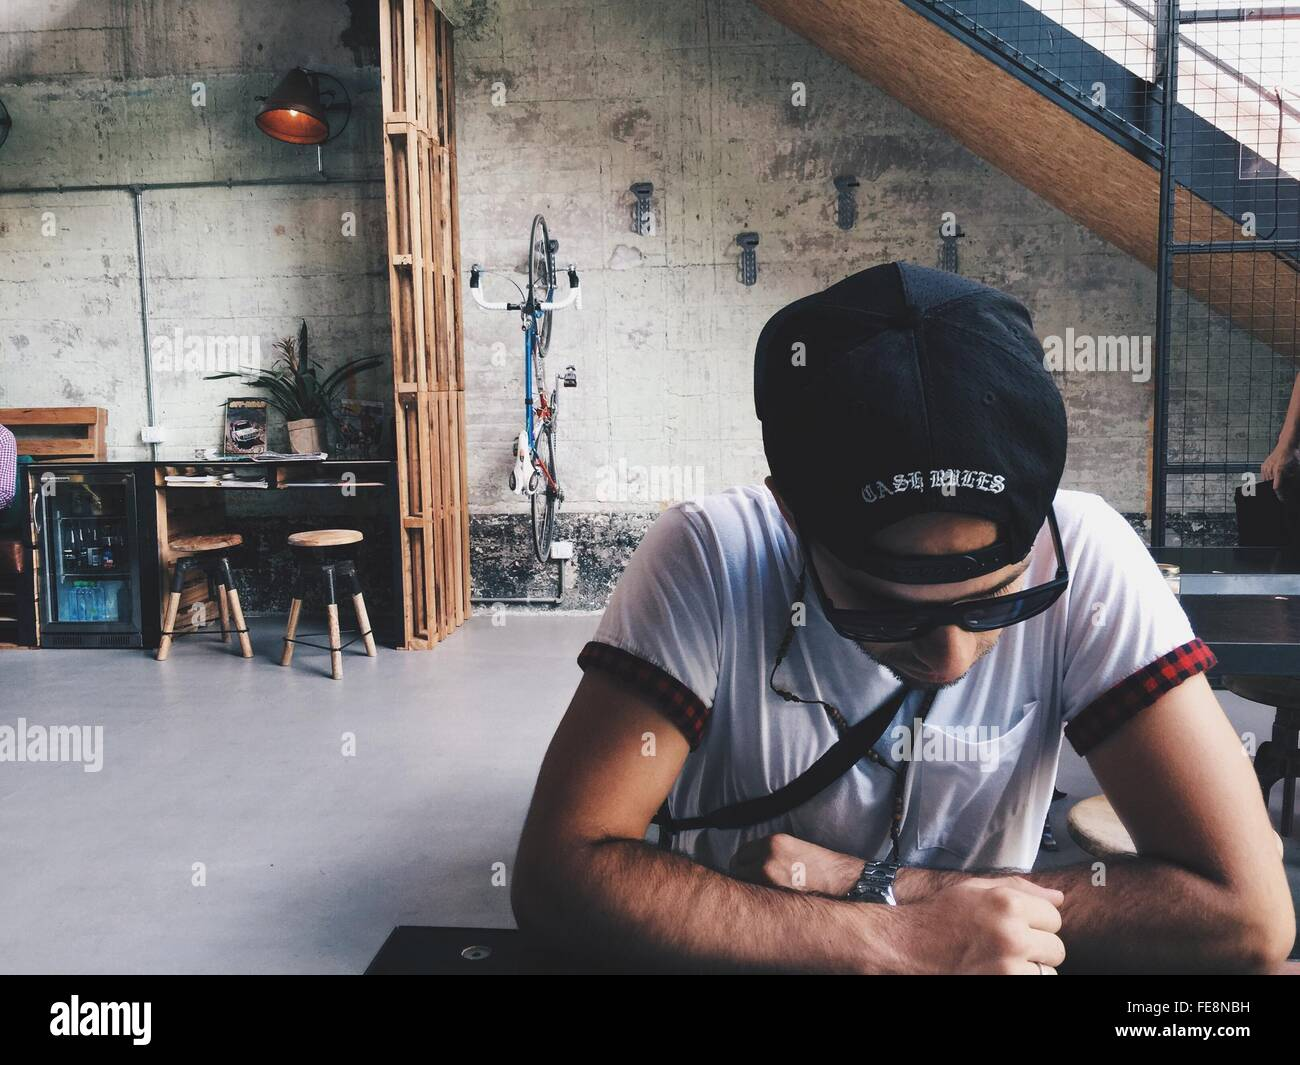 Man In Sunglasses And Cap Looking Down - Stock Image